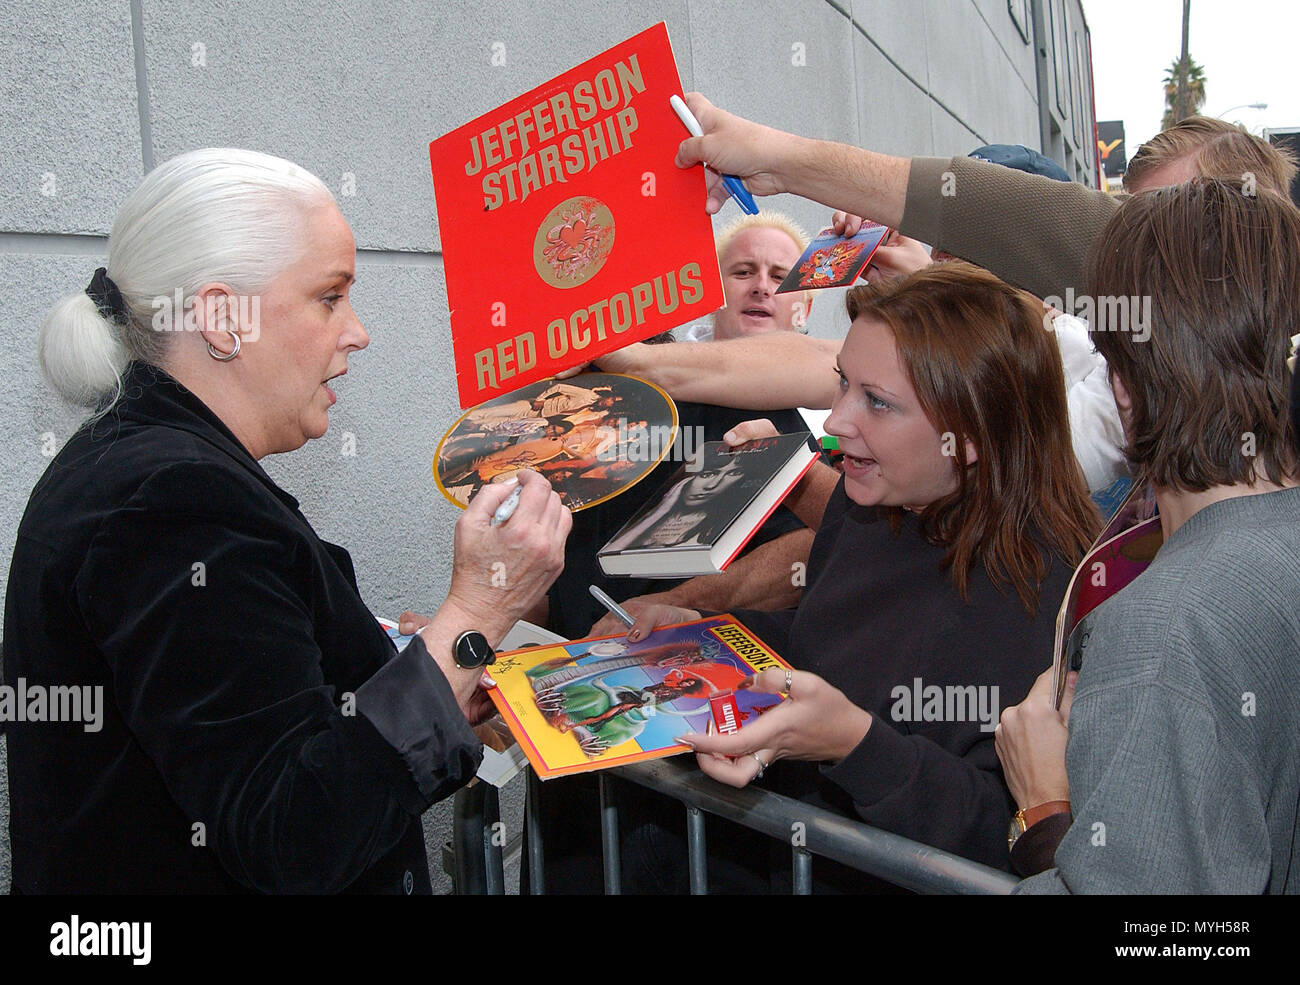 Grace Slick signing authograph after been inducted on the Rock Walk of Fame at the Guitar Center in Los Angeles. October 22, 2002.            -            GraceSlick_RockWalkOfFame02.jpgGraceSlick_RockWalkOfFame02  Event in Hollywood Life - California, Red Carpet Event, USA, Film Industry, Celebrities, Photography, Bestof, Arts Culture and Entertainment, Topix Celebrities fashion, Best of, Hollywood Life, Event in Hollywood Life - California, movie celebrities, TV celebrities, Music celebrities, Topix, Bestof, Arts Culture and Entertainment, Photography,    inquiry tsuni@Gamma-USA.com , Credit - Stock Image